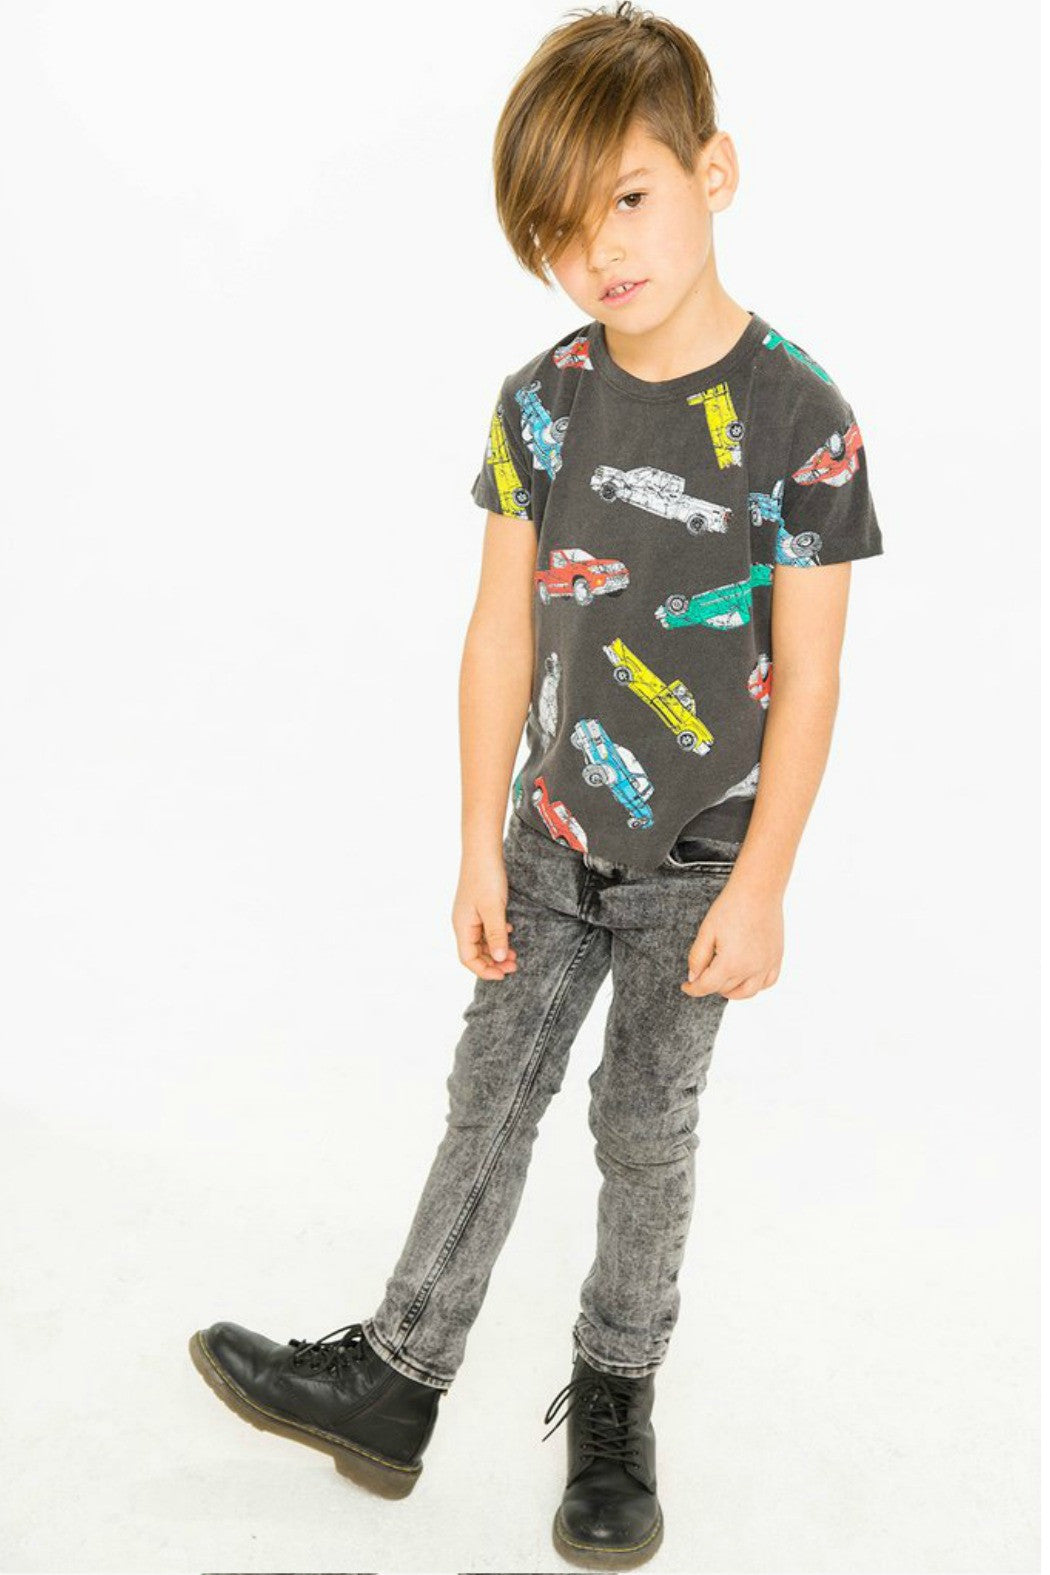 Chaser Kids - Traffic jam - R+D Hipster Emporium | Womens & Mens Clothing - 1